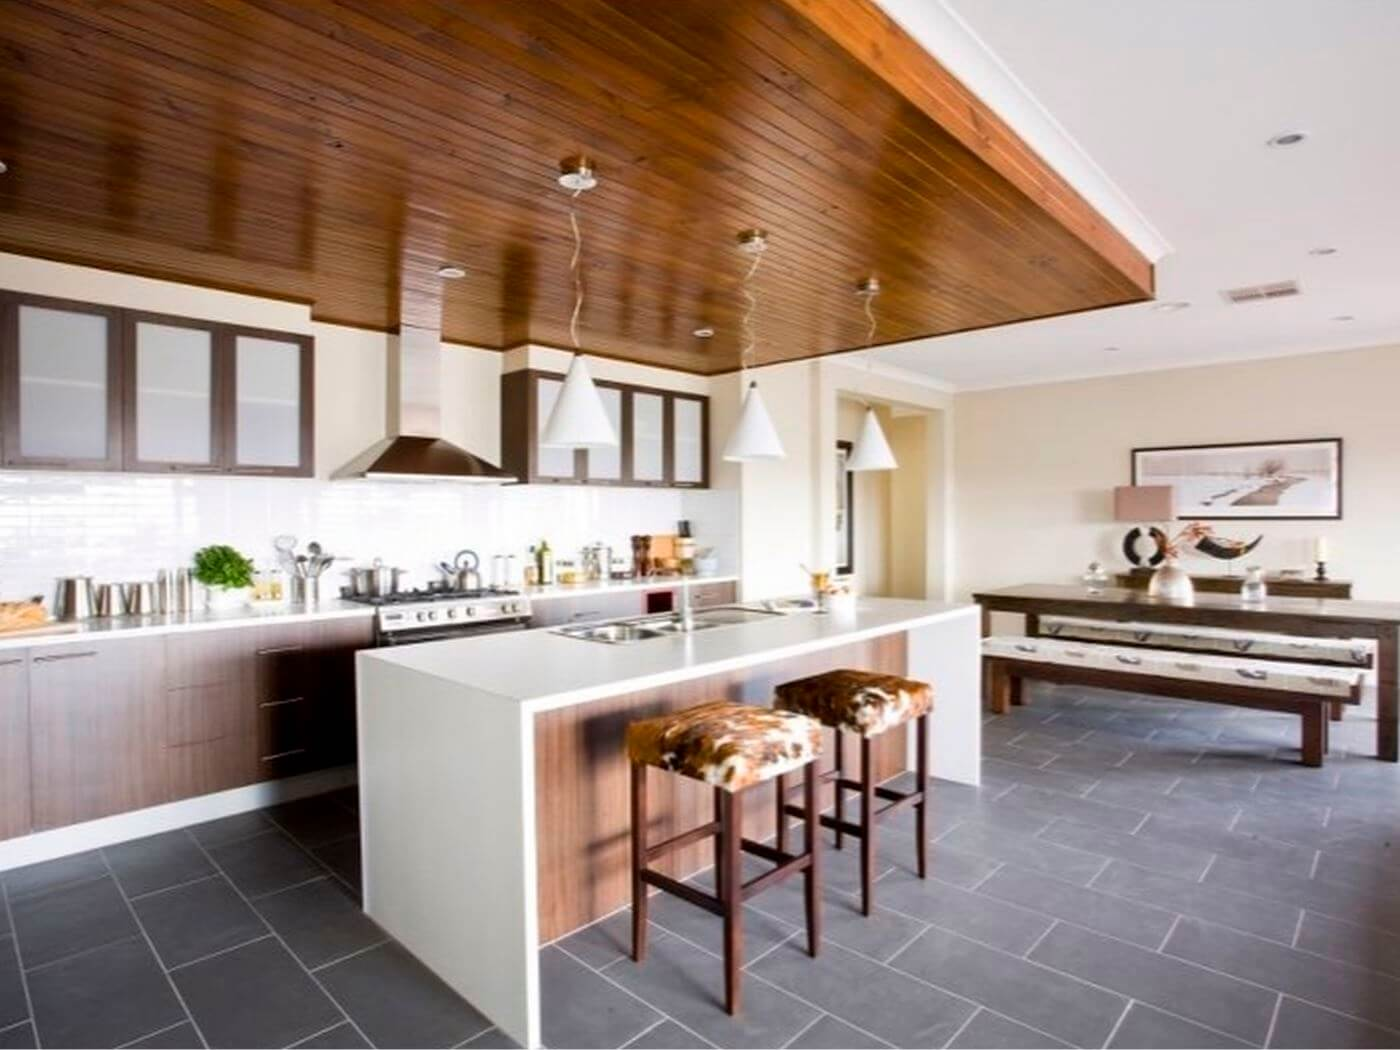 Design Considerations For The Perfect Kitchen In Your New Home